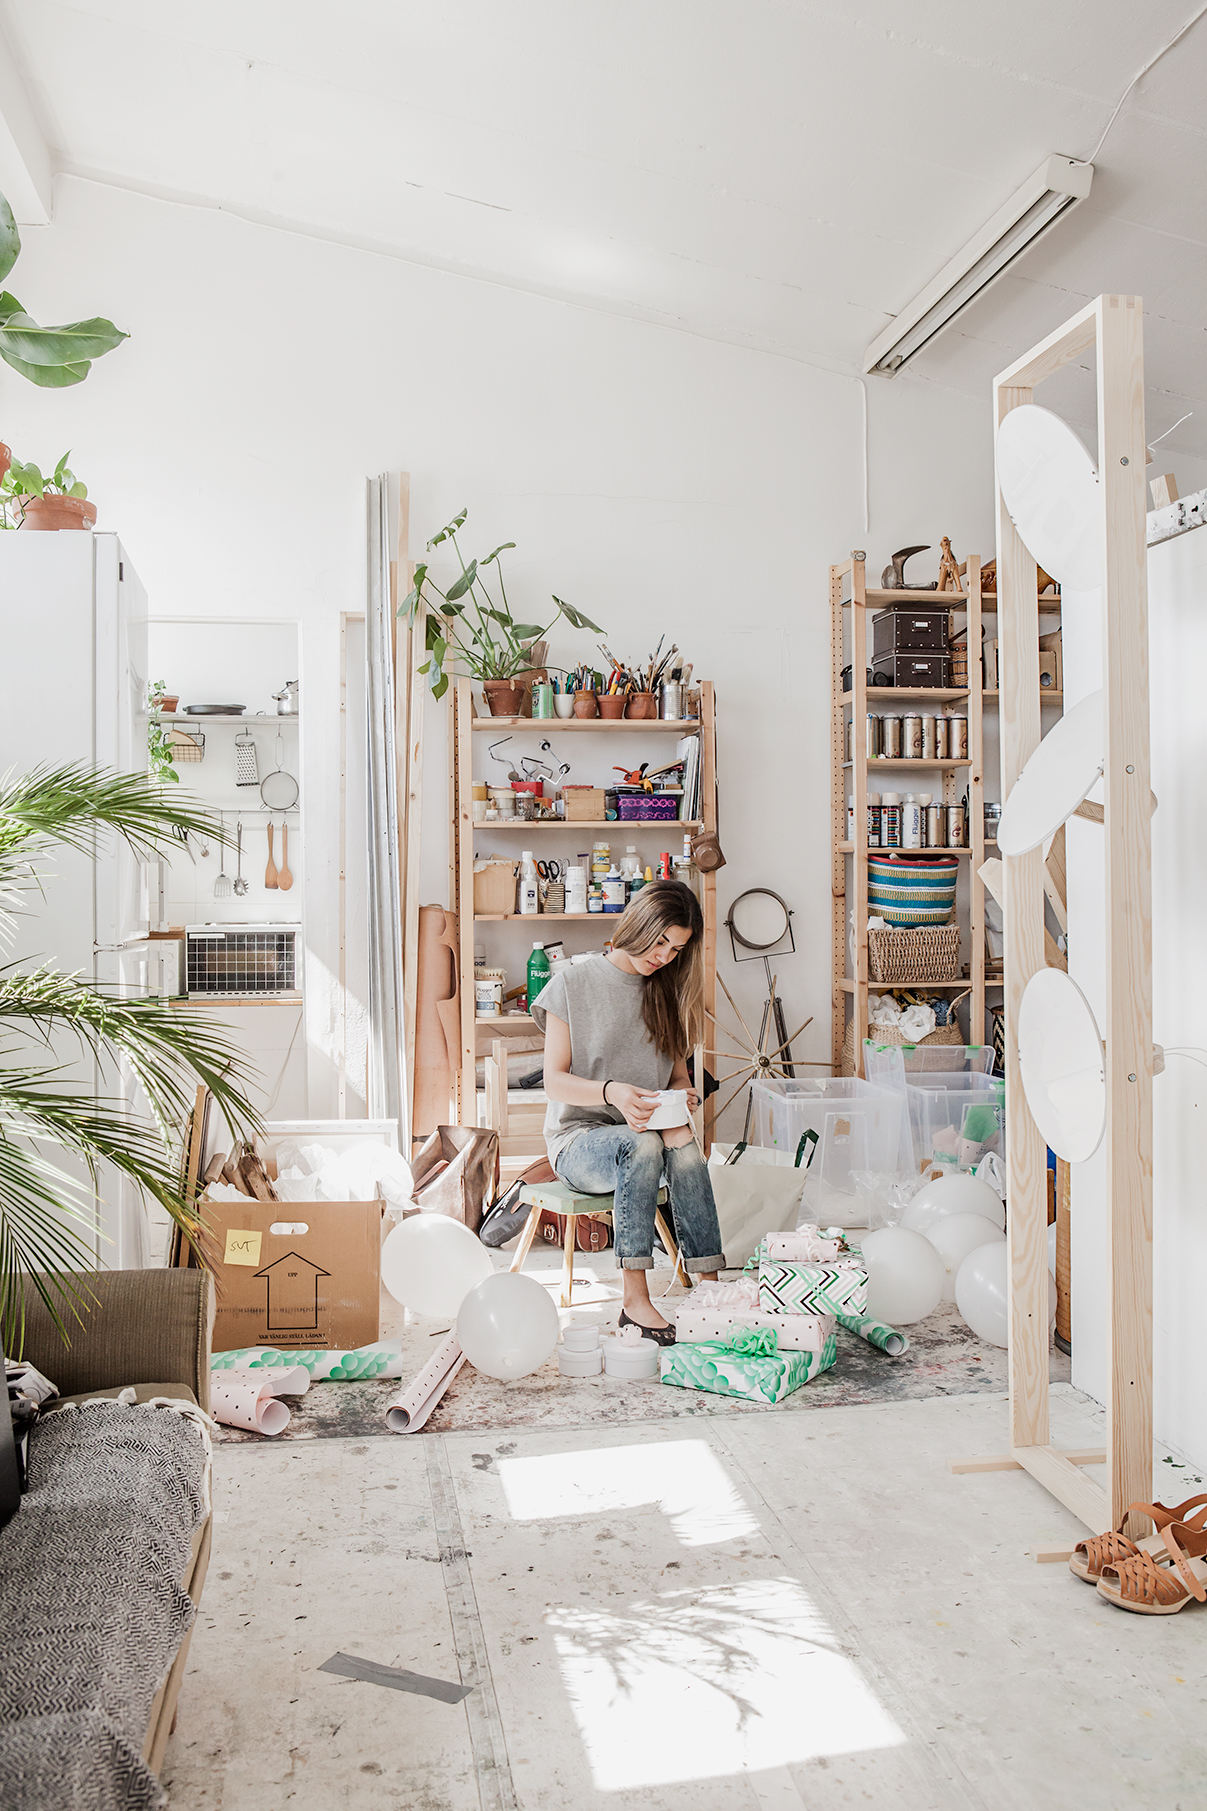 IKEA Livet Hemma behind the scenes 1280 photo Anna Malmberg